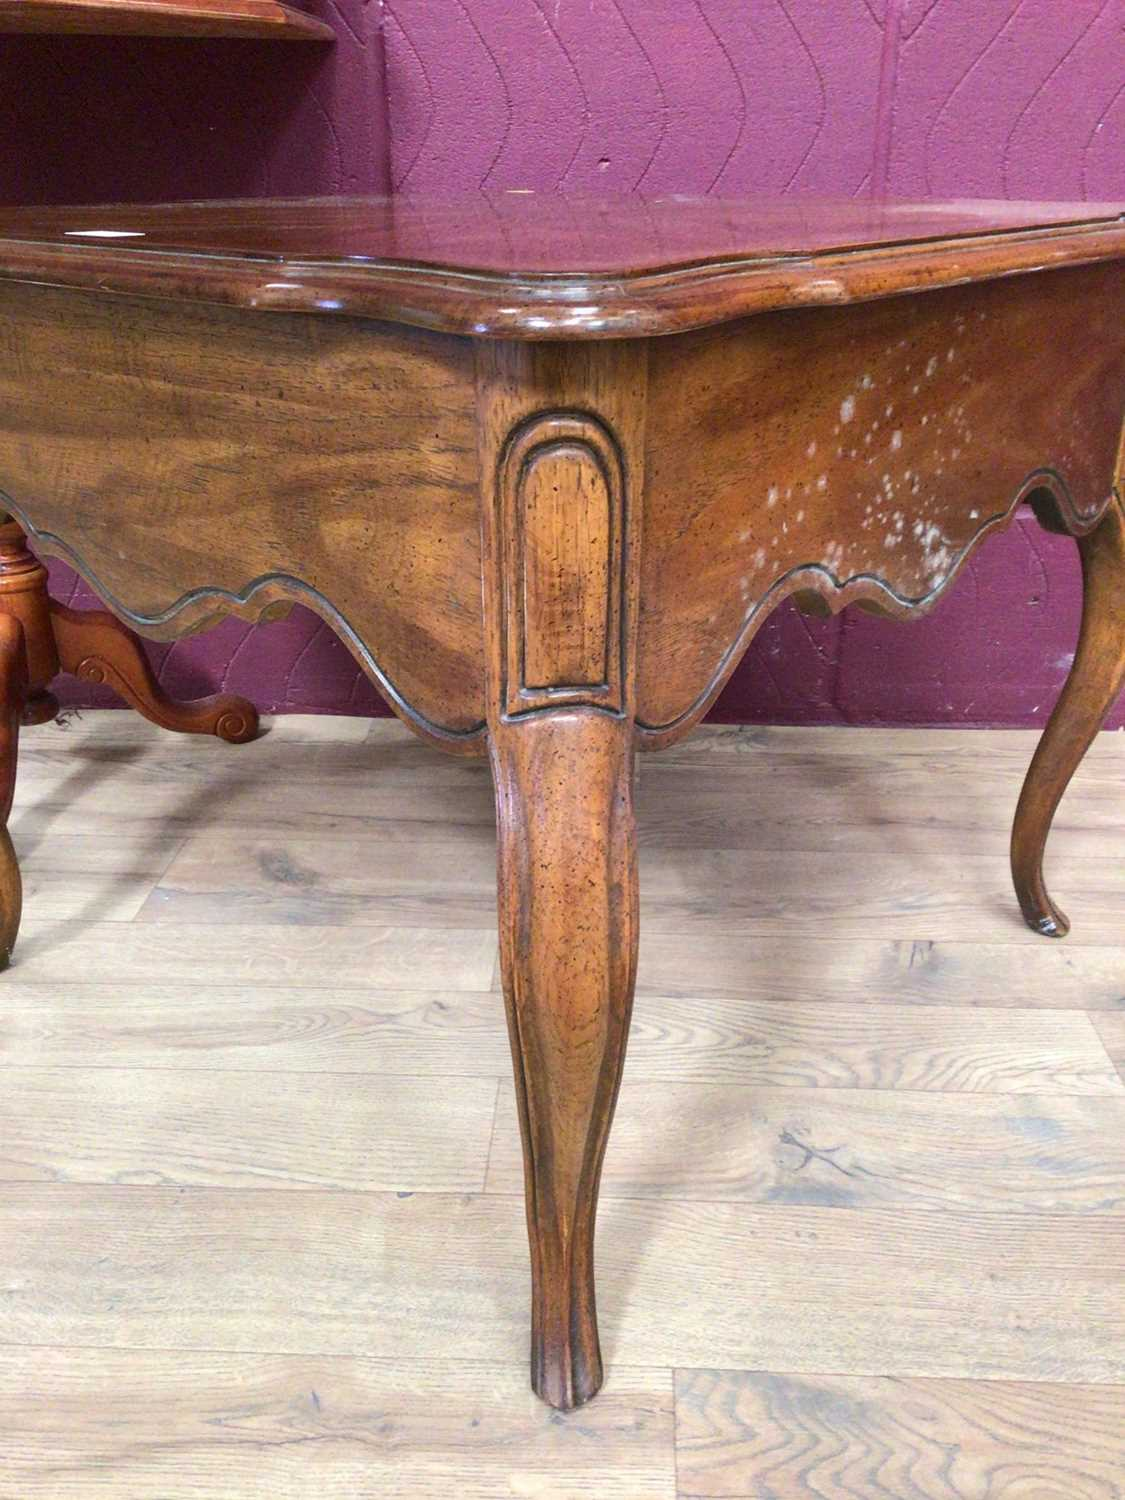 Italian inlaid marquetry table, low coffee table of square form with draw and a mirror (3) - Image 5 of 5